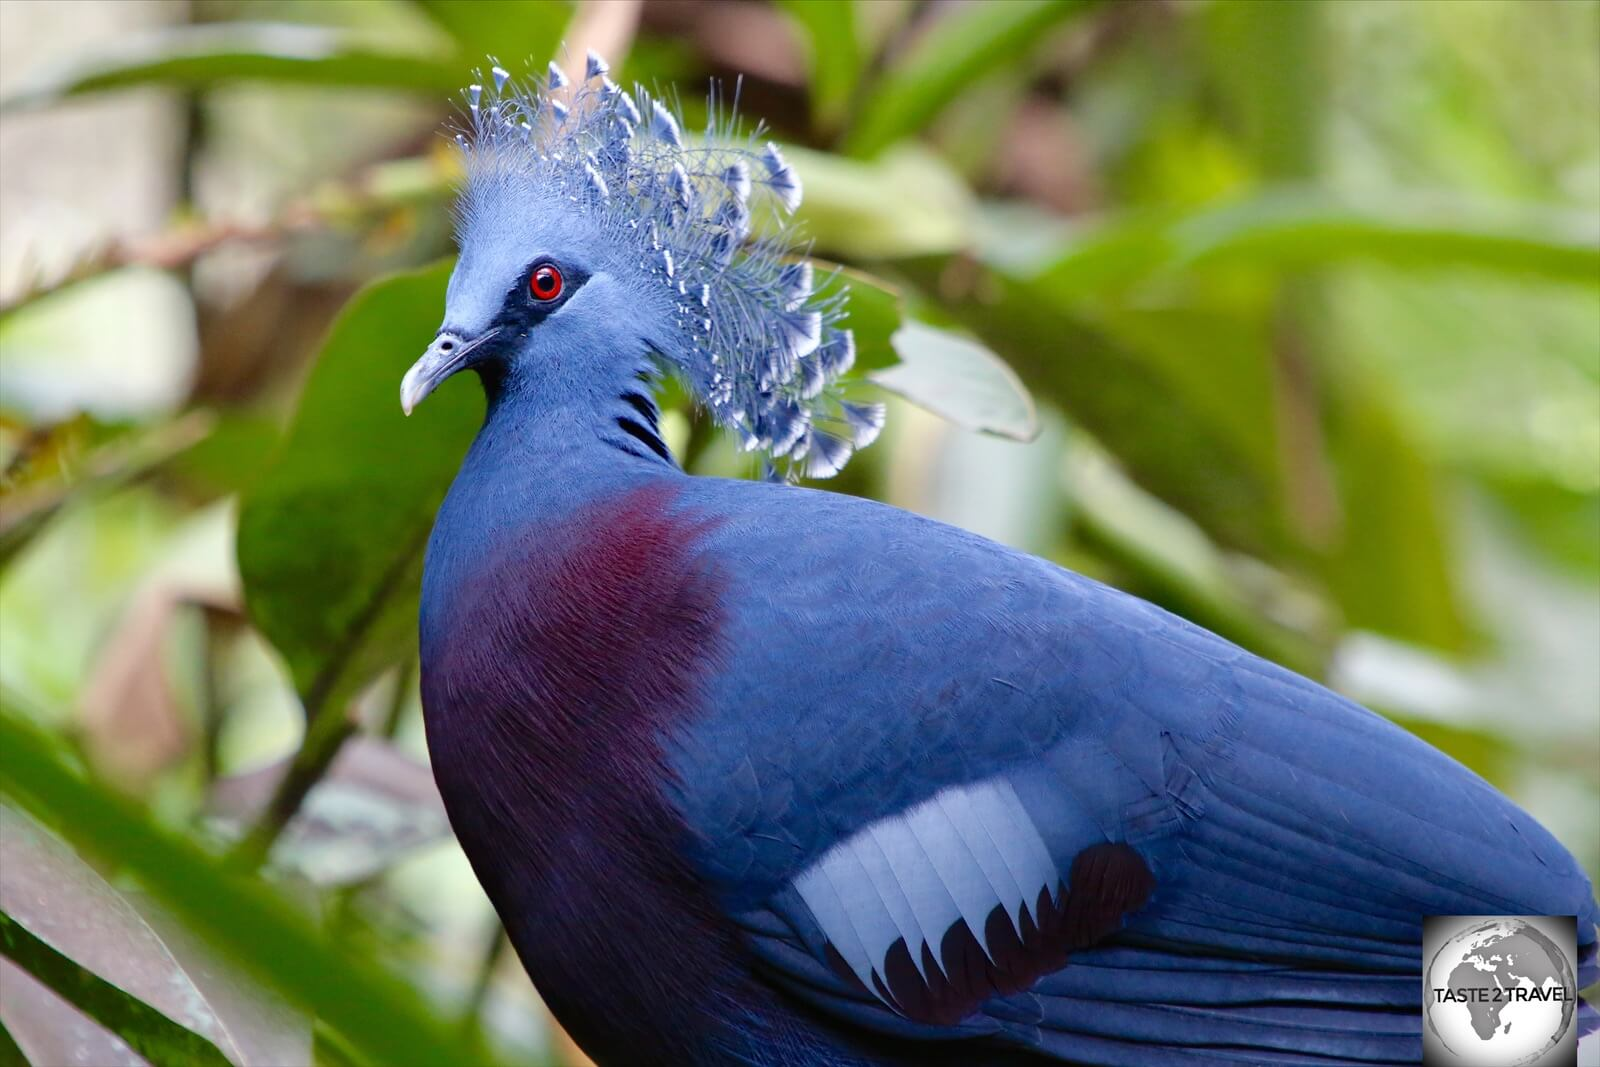 About the size of a hen, the Victoria-crown pigeon is the largest pigeon in the world.